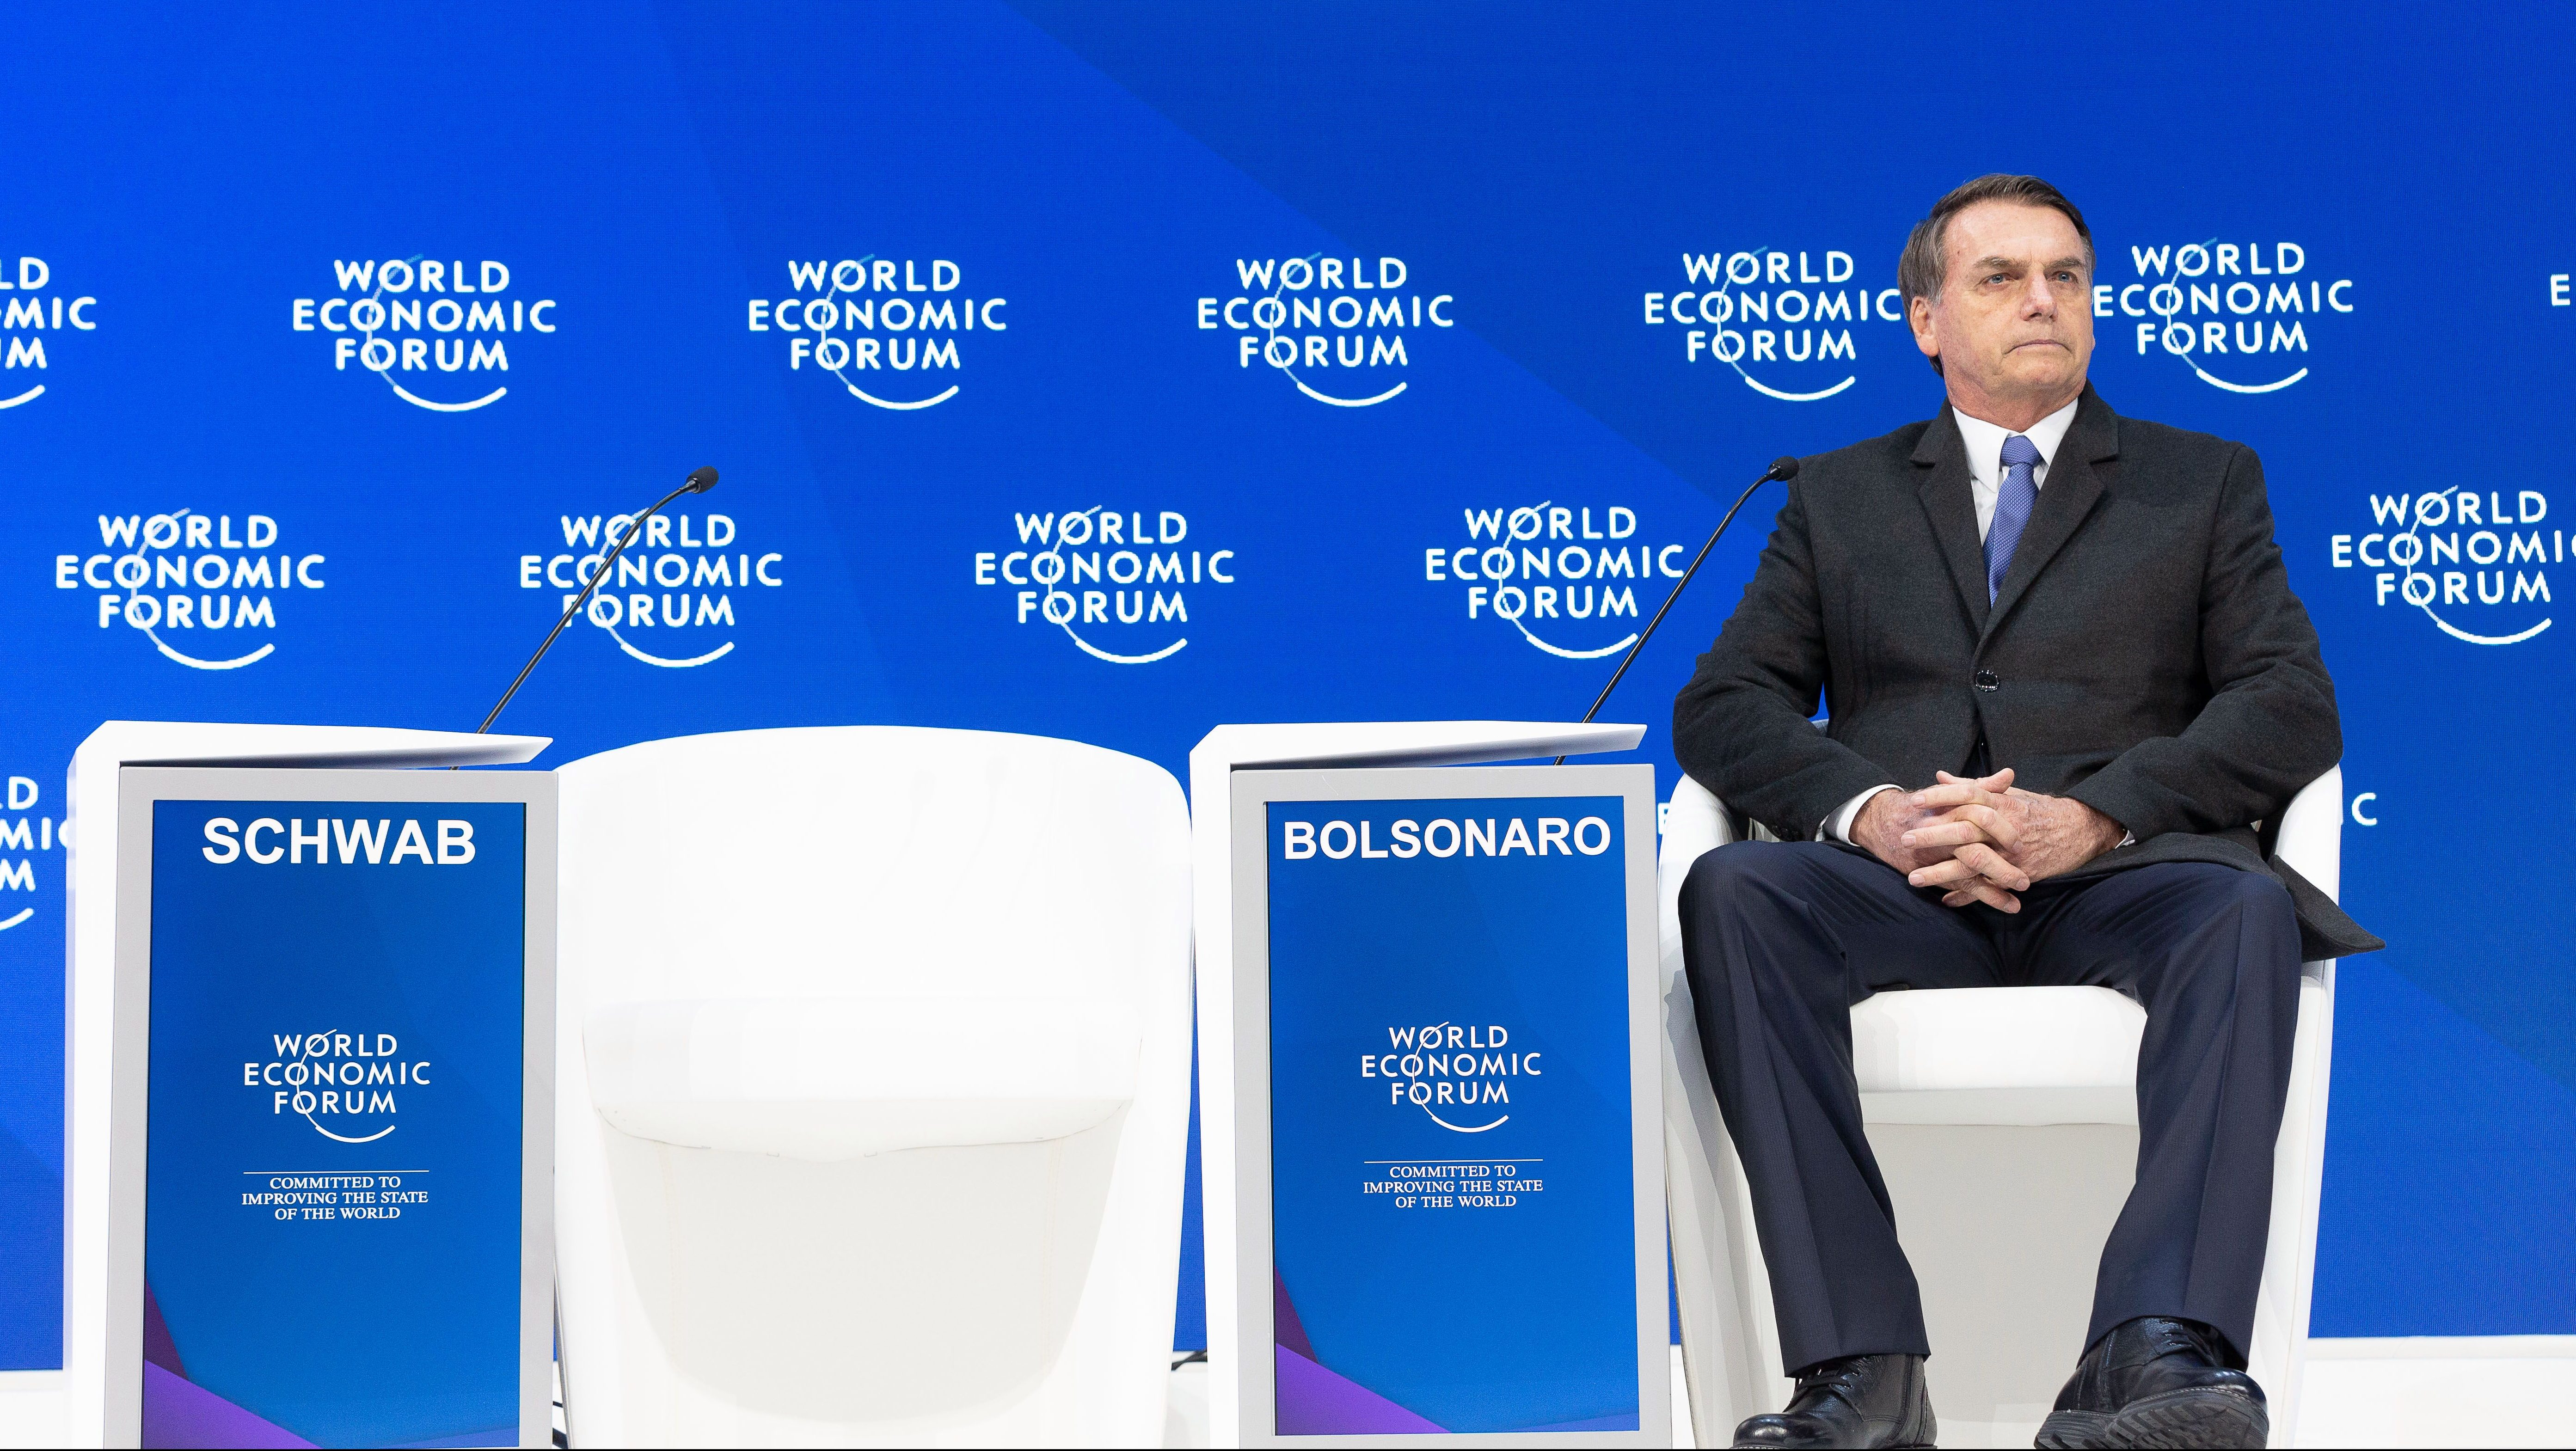 Jair Bolsonaro, President of Brazil speaking at the Annual Meeting 2019 of the World Economic Forum in Davos, January 22, 2018.